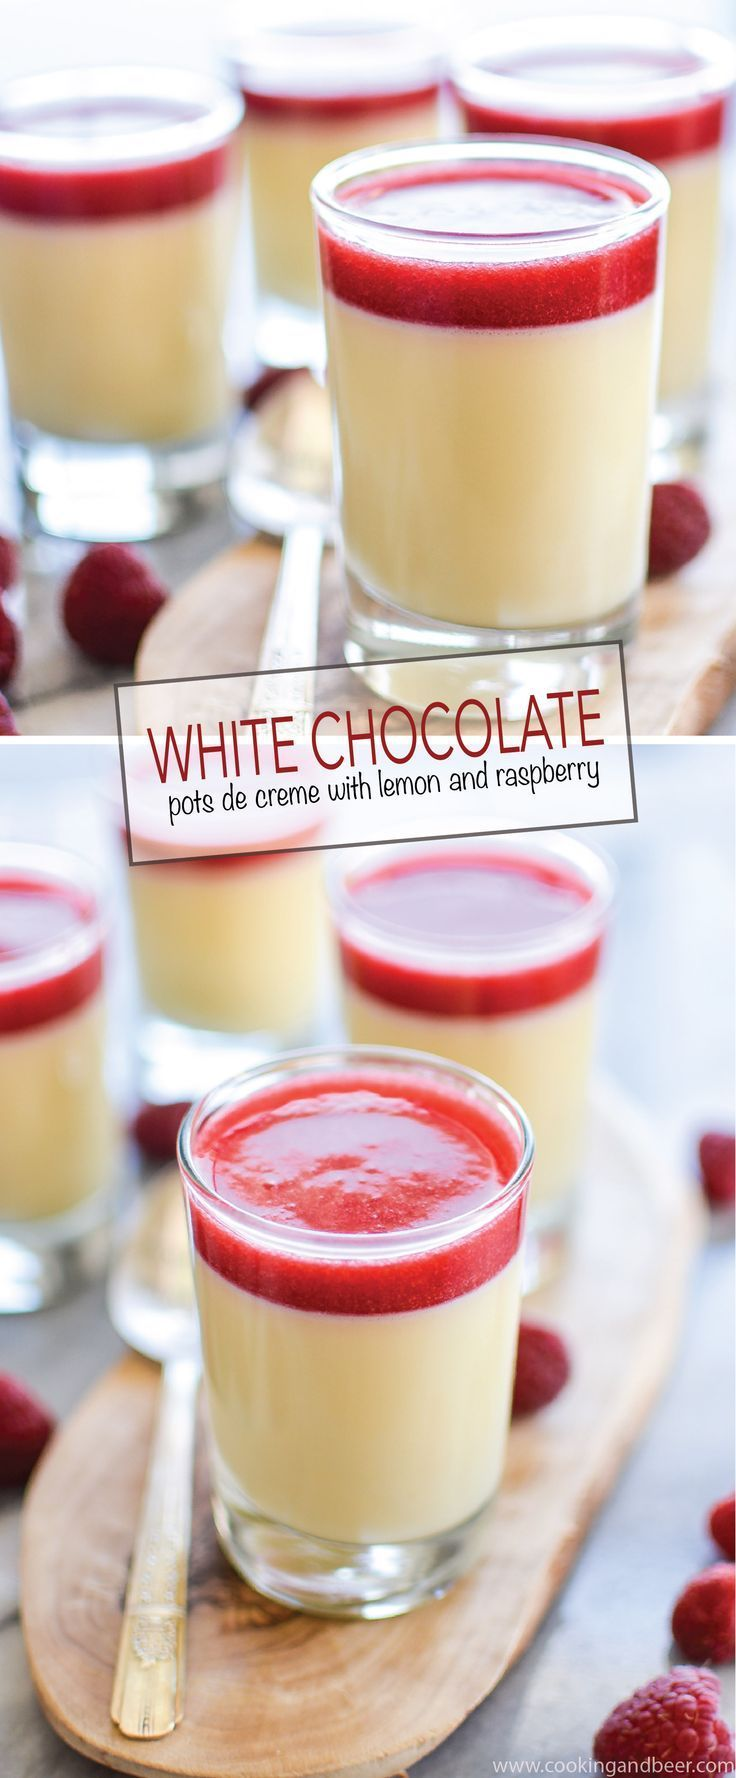 White Chocolate Pots de Creme with Lemon and Raspberry Sauce